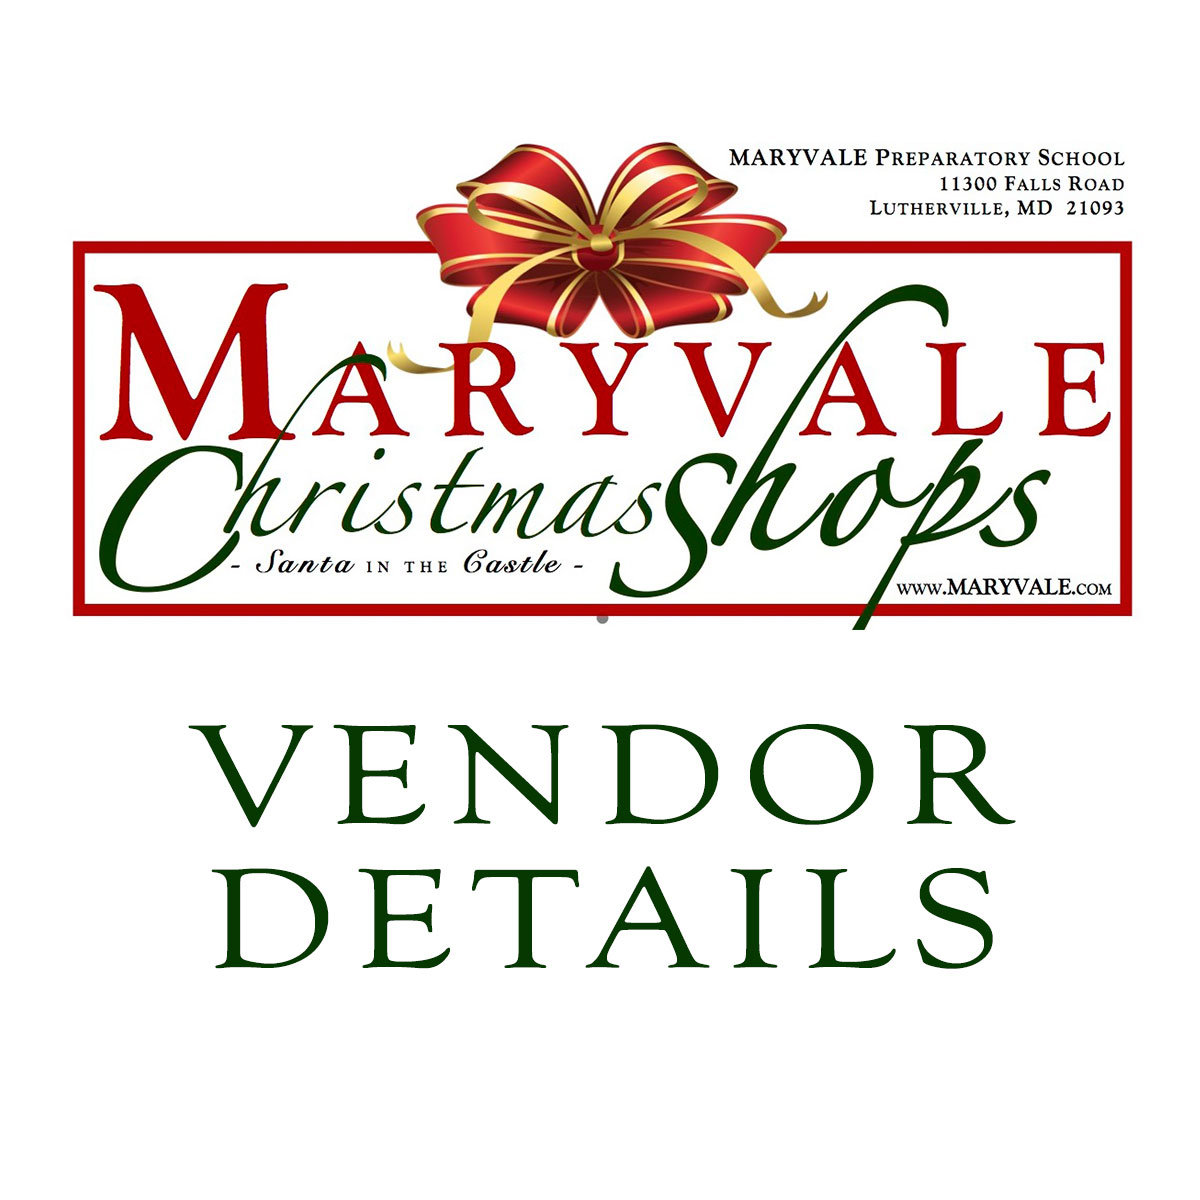 Christmas Shops @ Maryvale for Vendors